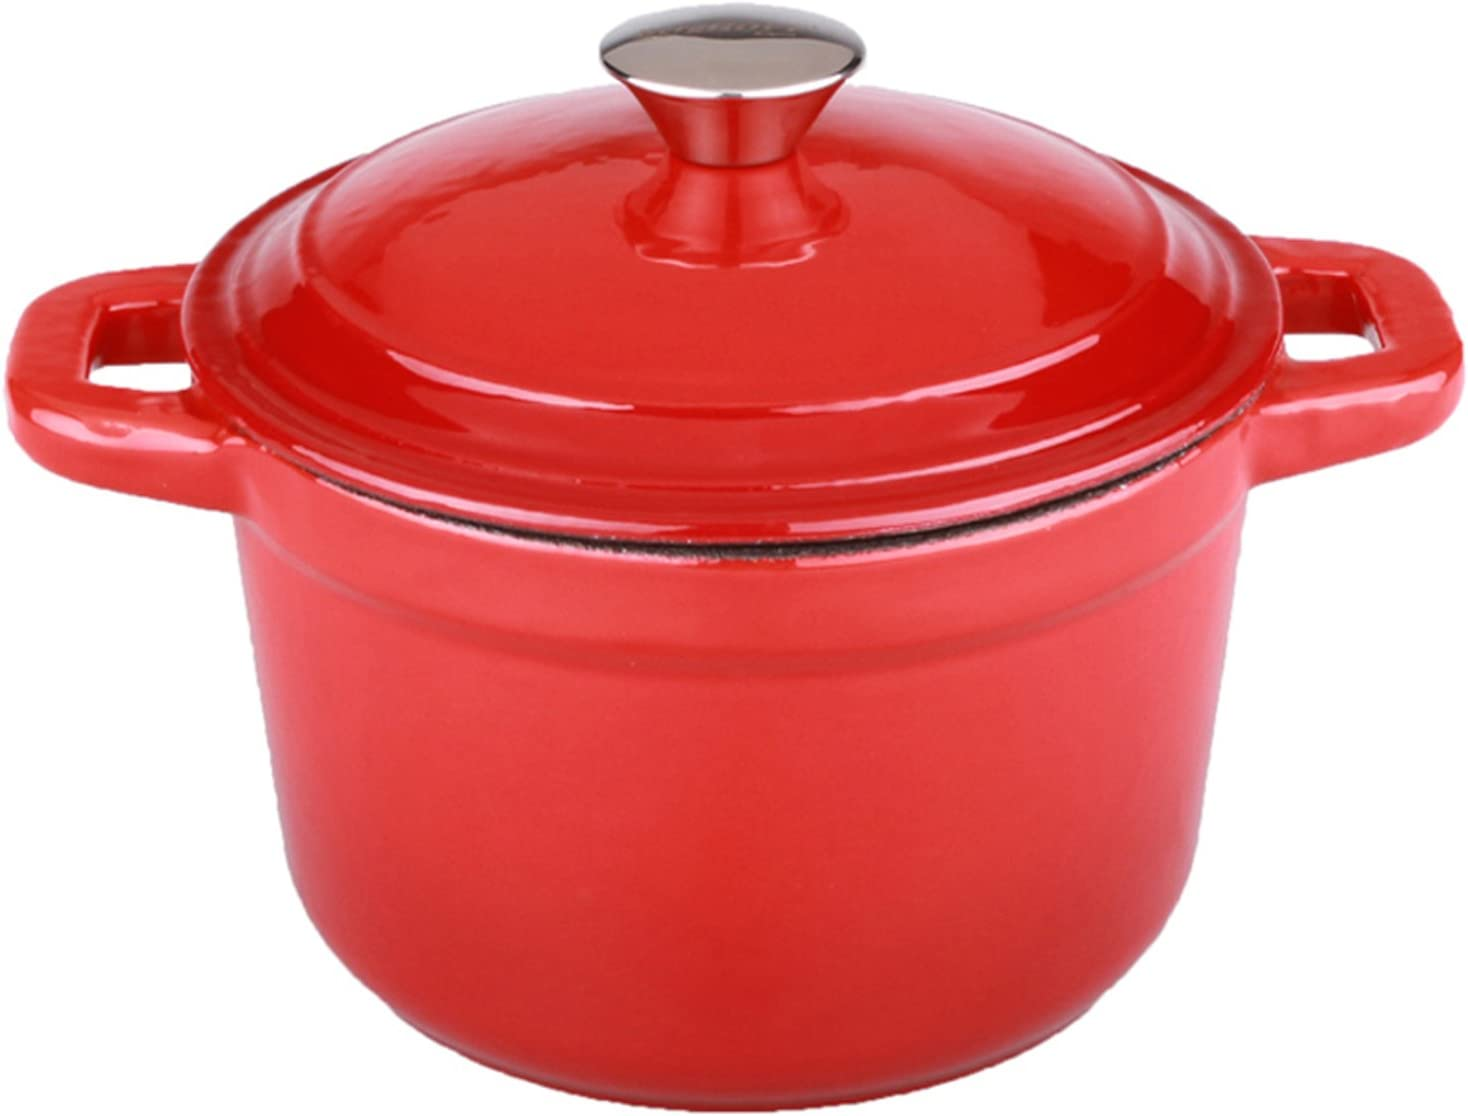 Berghoff Neo Cast Iron Stockpot with a Lid, Red, 7-Qt.